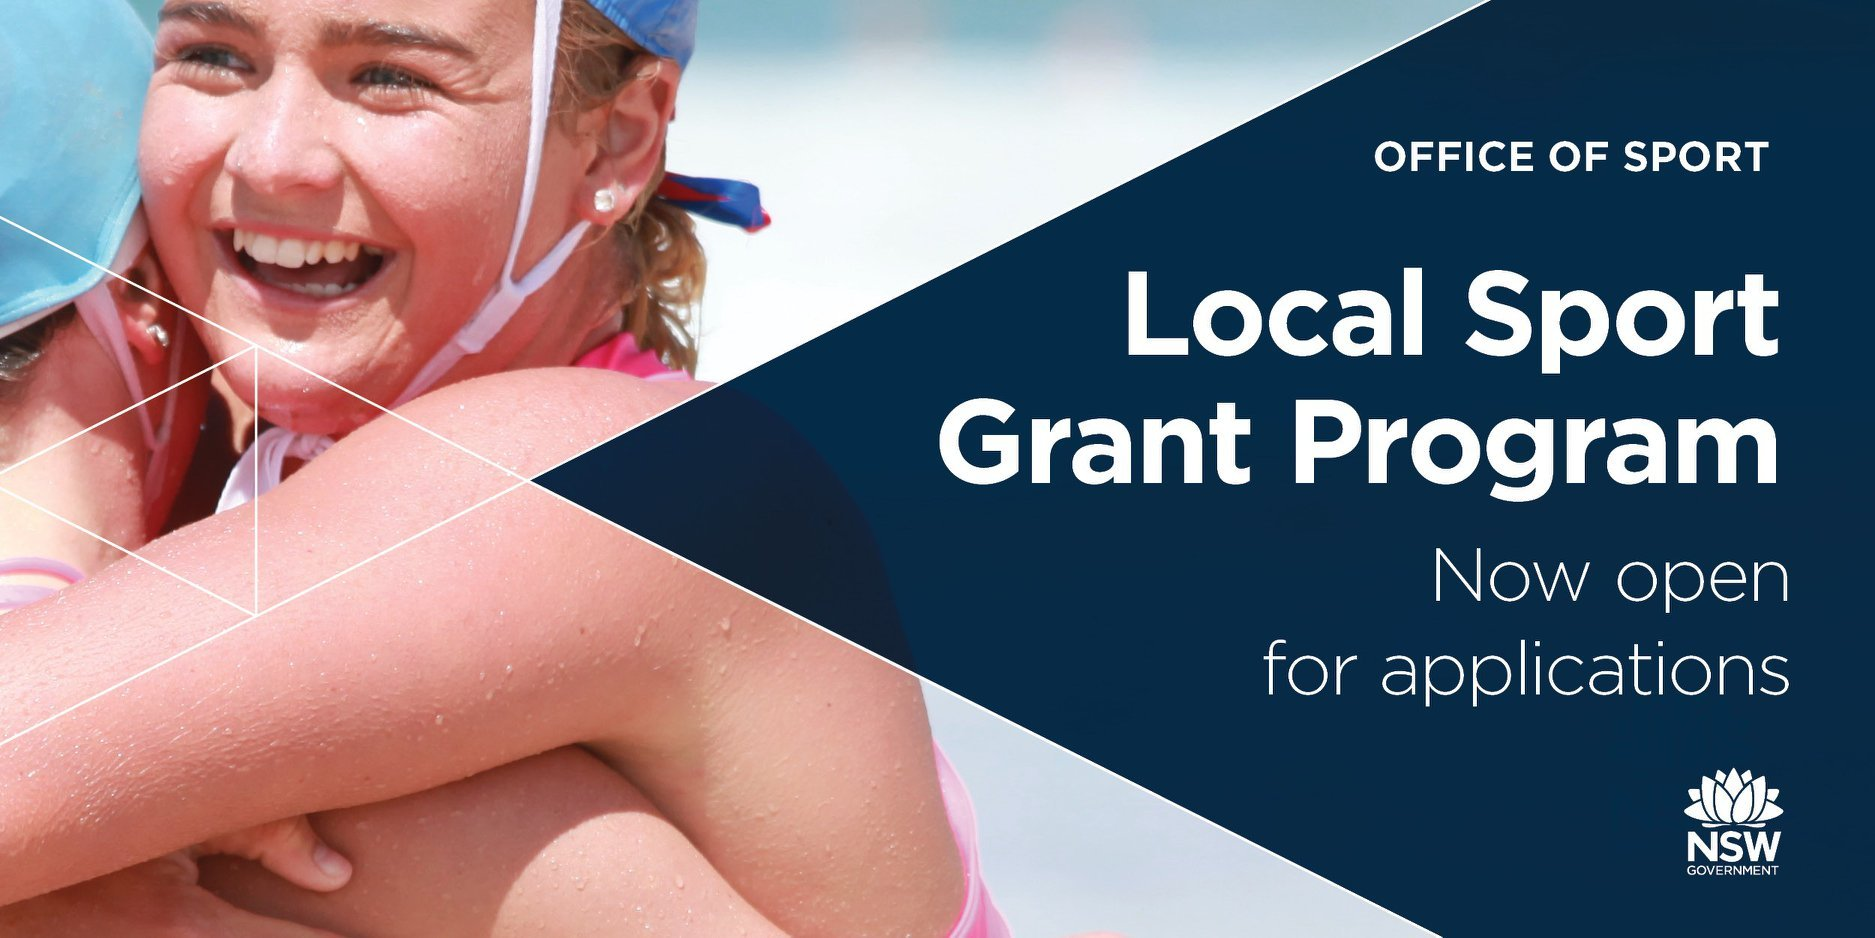 Applications are now open for this year's Local Sports Grant Program. A total of $35,000 is available to sporting groups in the Lake Macquarie electorate